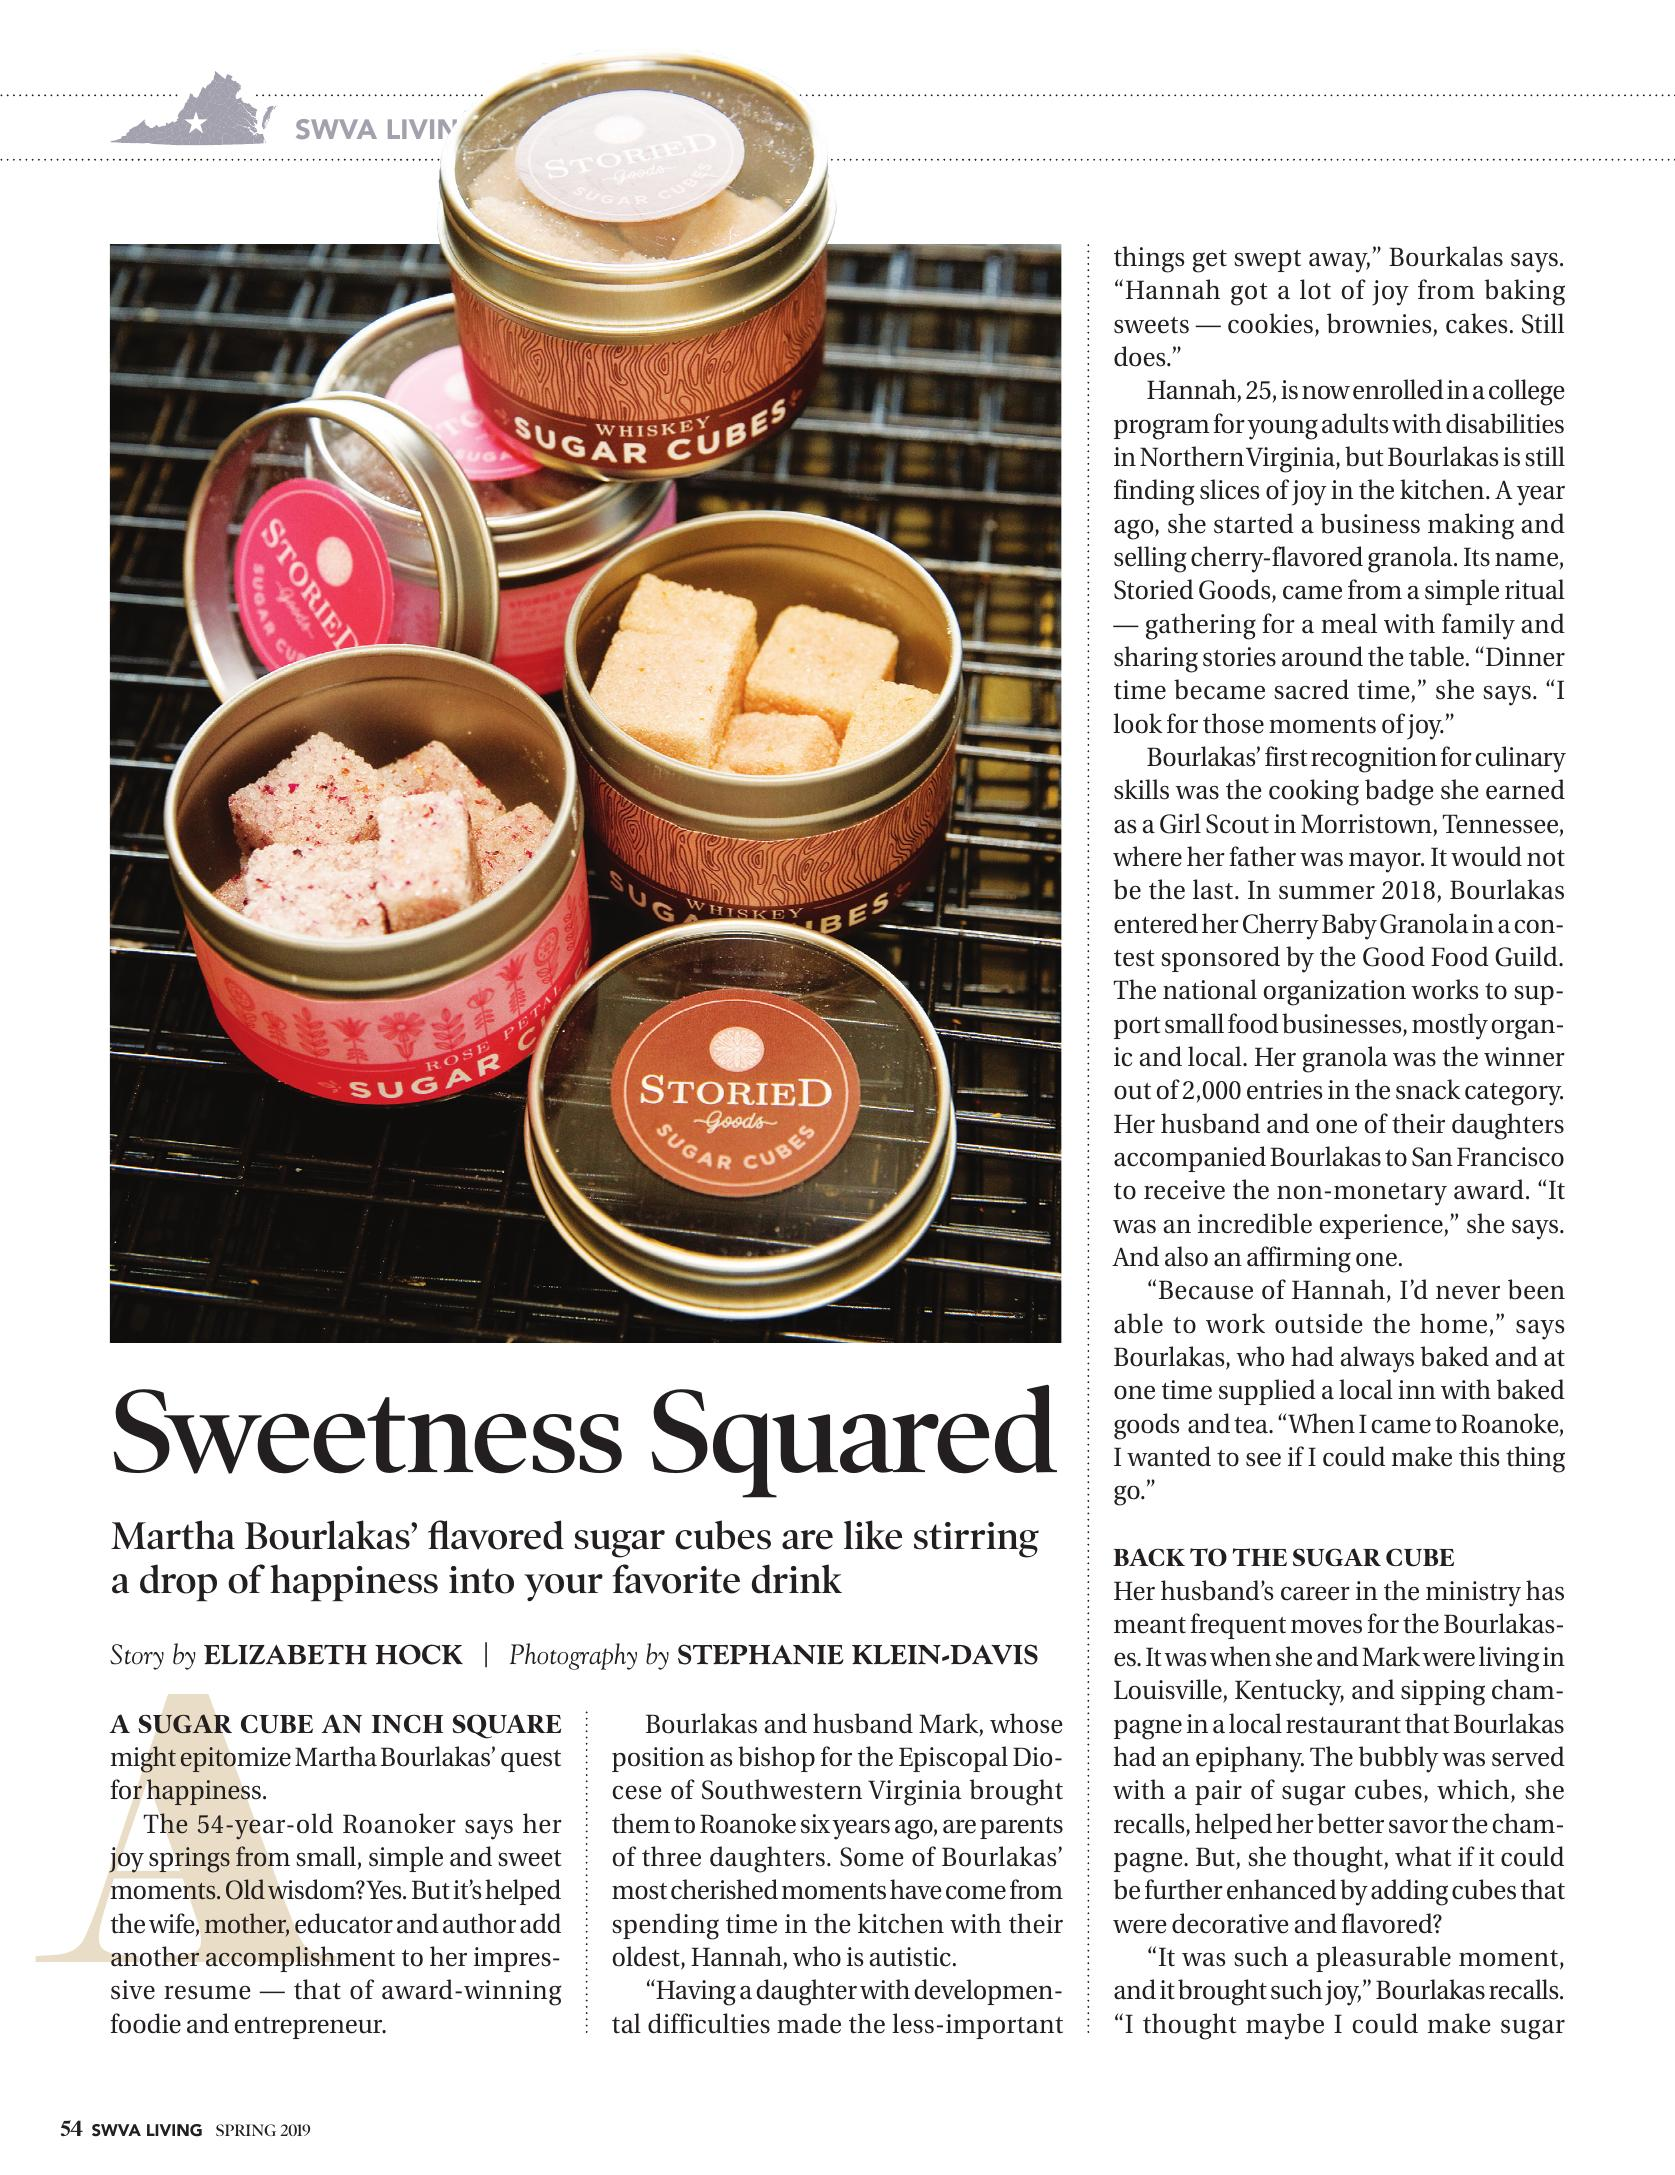 Image of Article from SWVA Living Magazine for Storied Goods' Award Winning Sugar Cubes